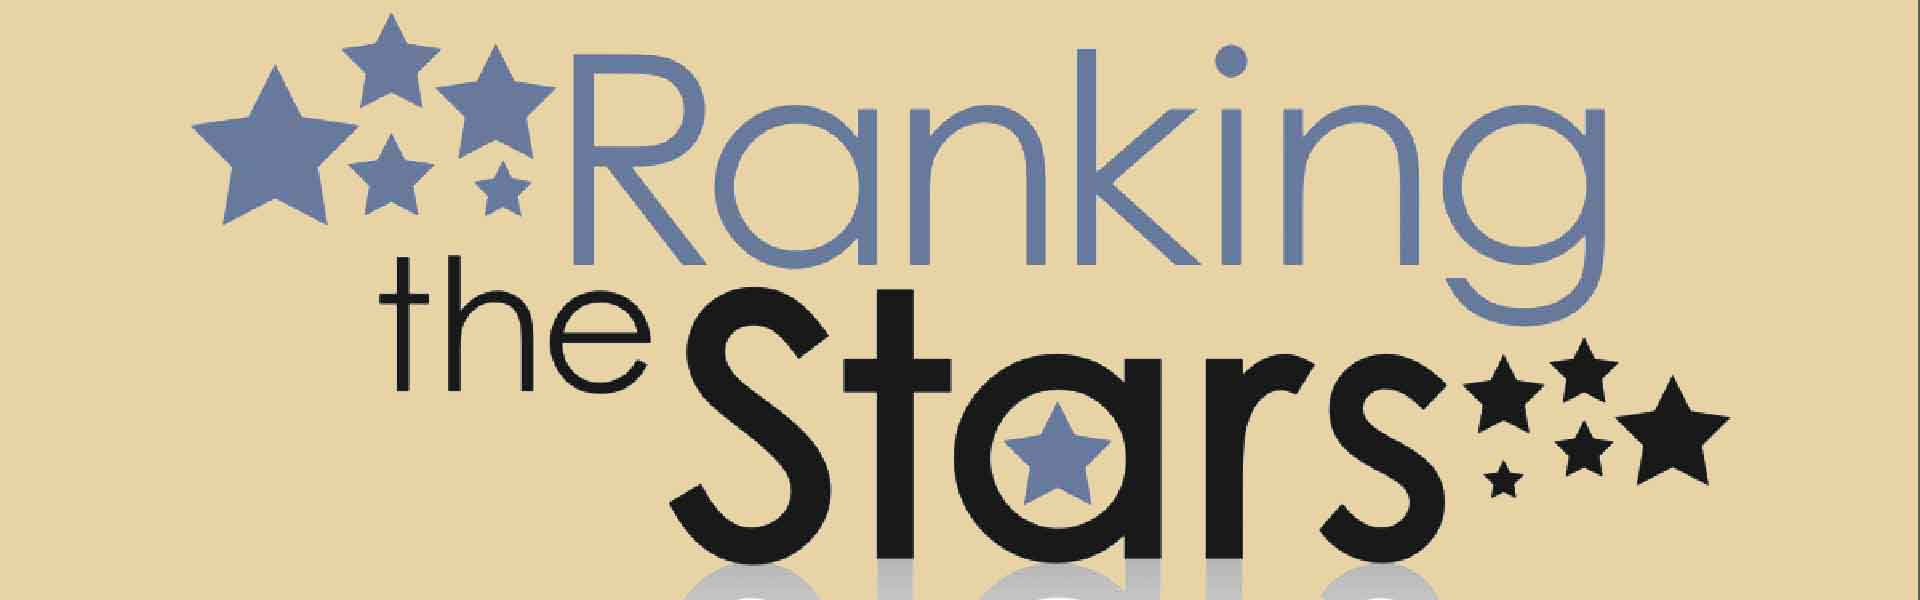 Ranking the Company ONLINE